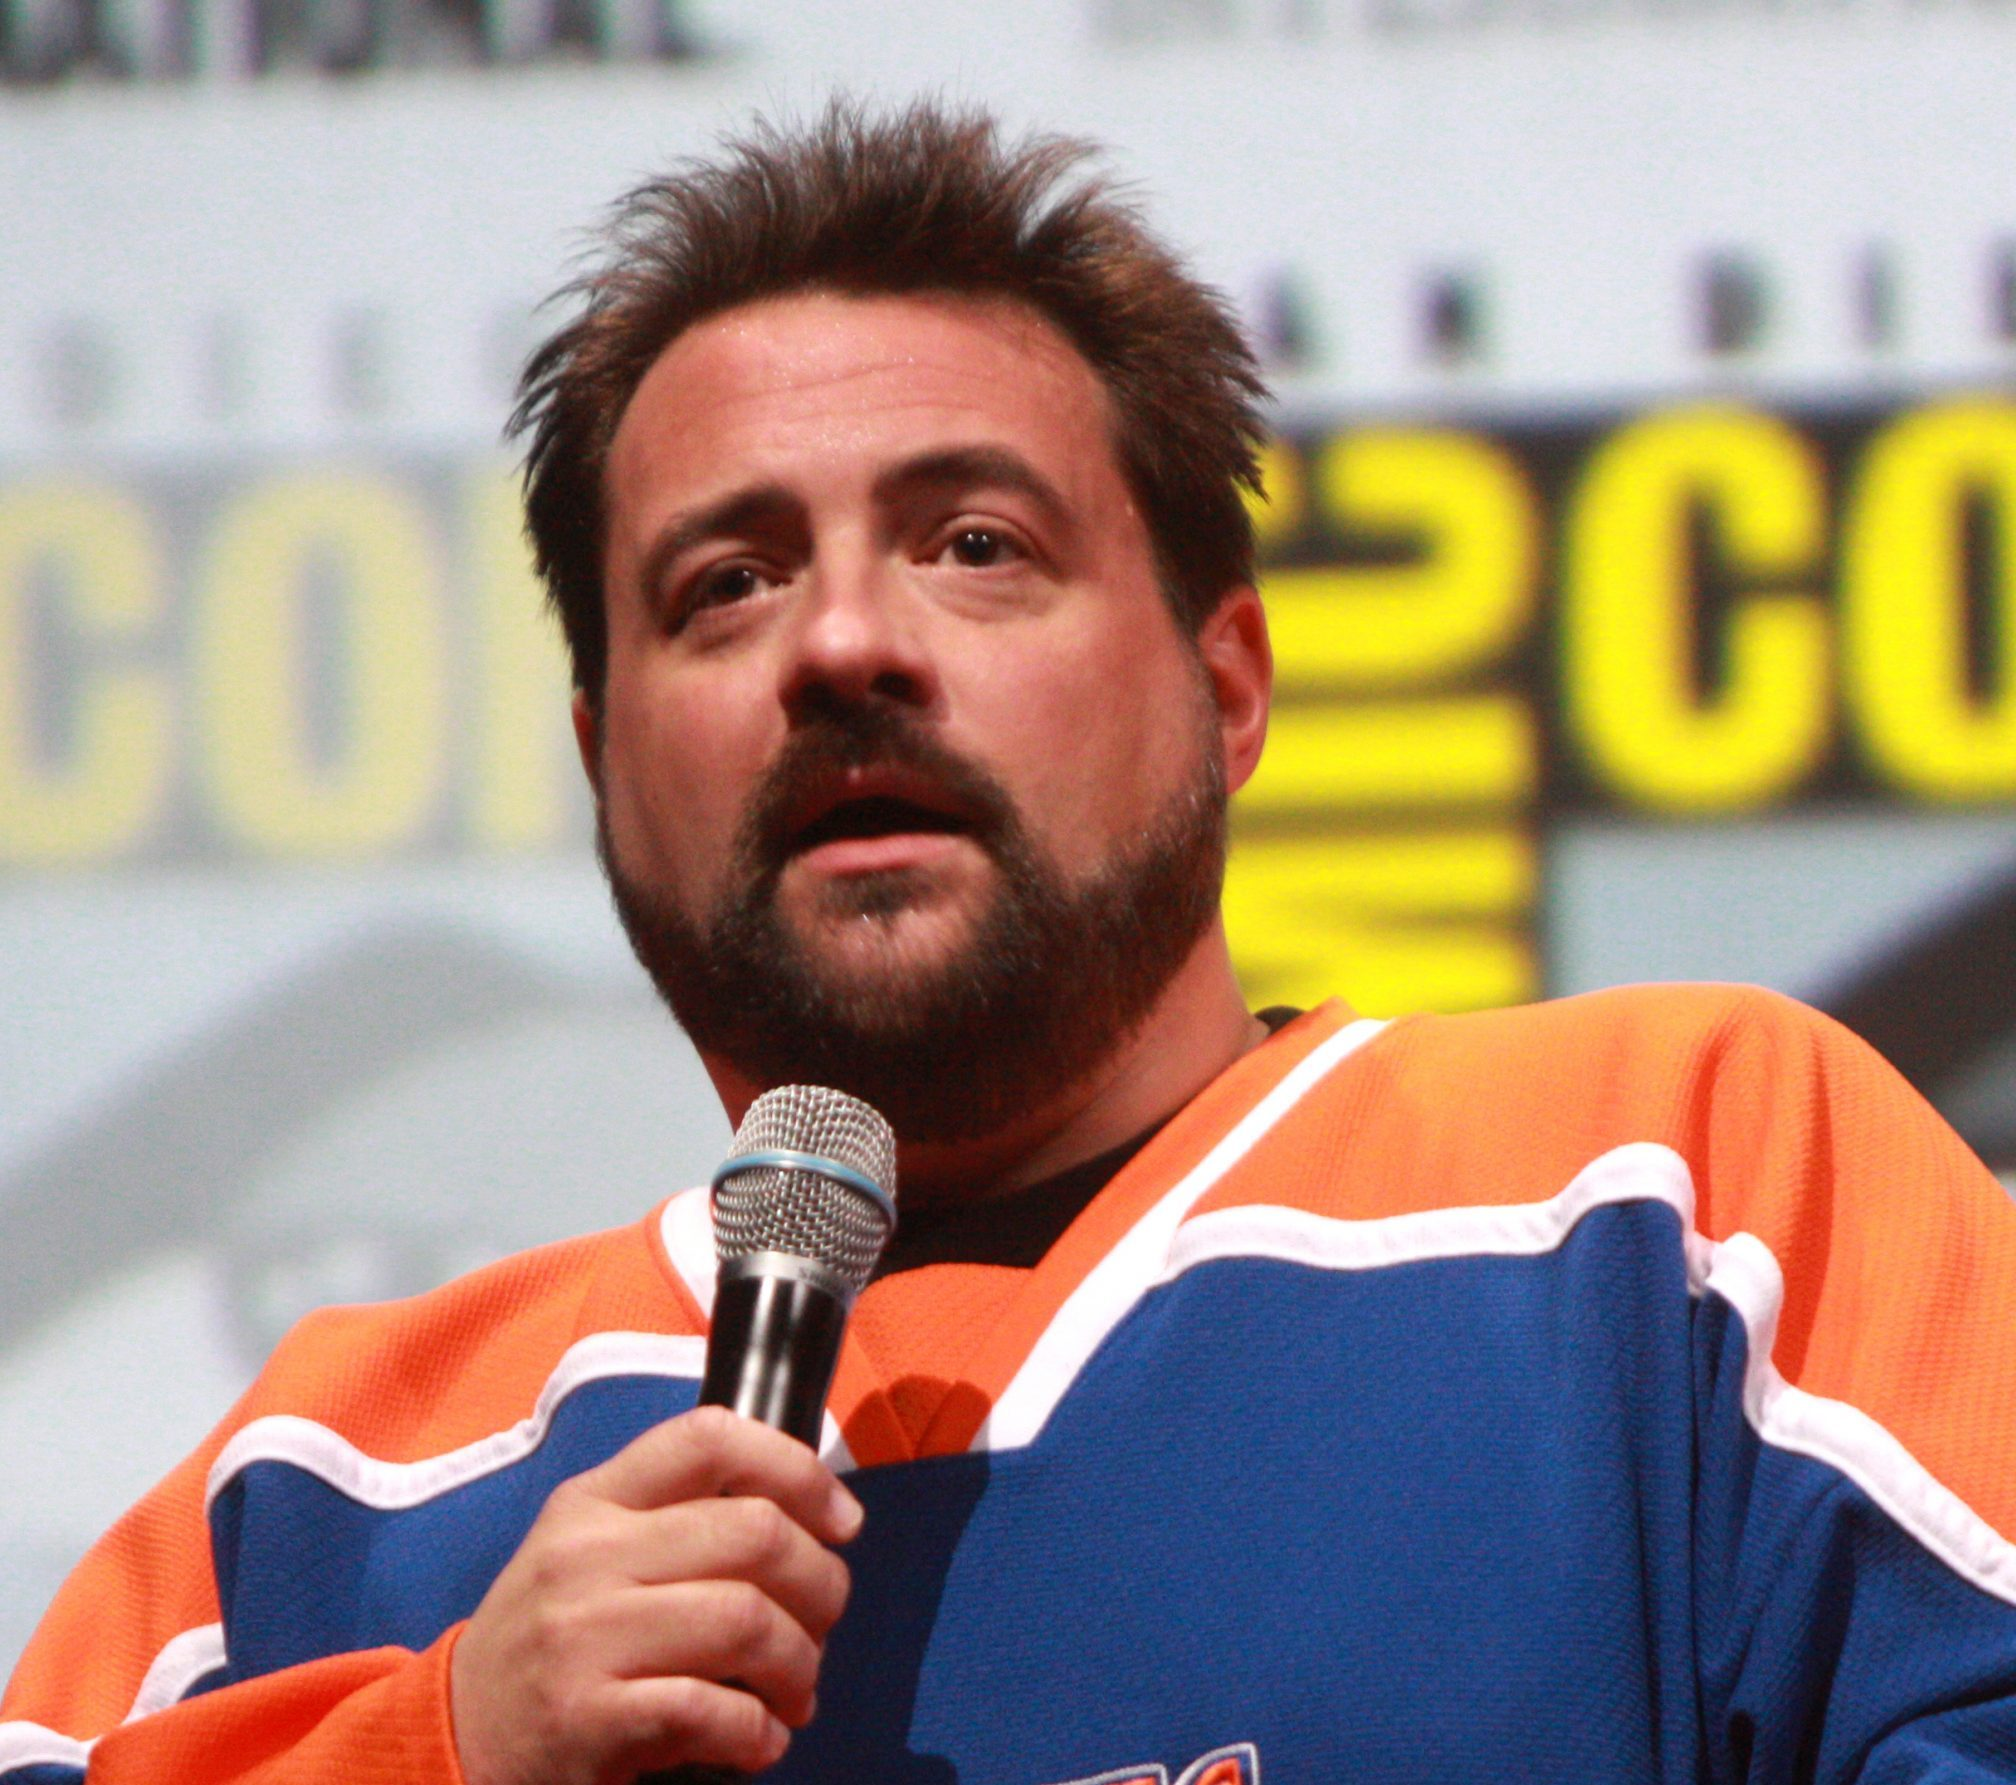 Kevin Smith by Gage Skidmore scaled e1616590830985 20 Actors And Directors Who Refused To Work With Each Other Ever Again